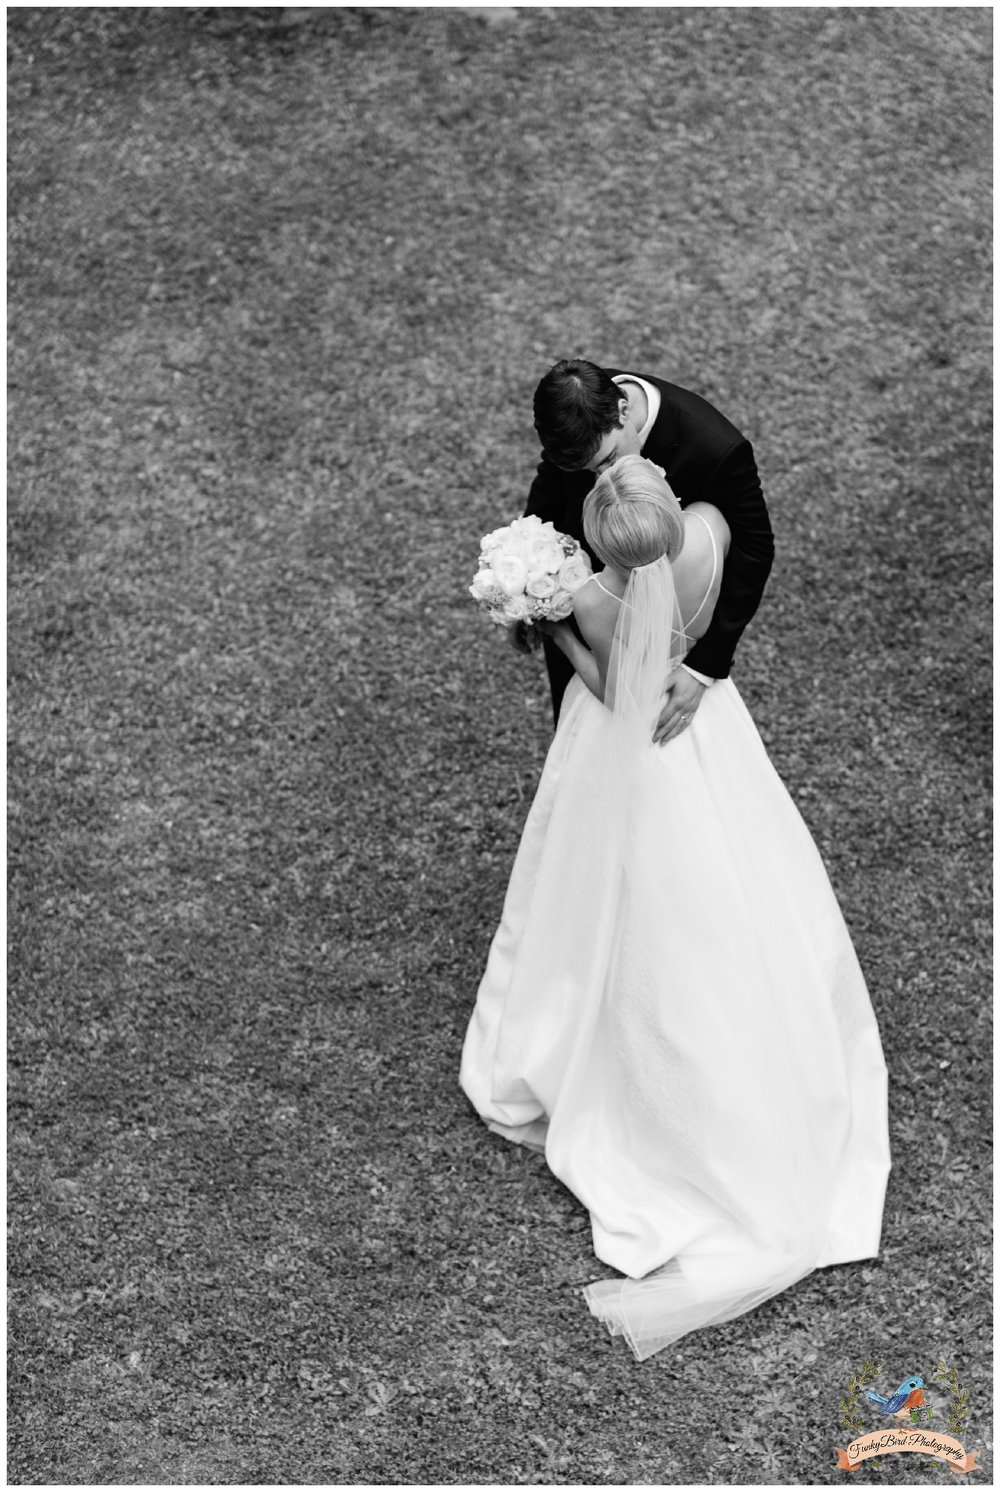 Wedding_Photographer_Tuscany_Florence_45.jpg